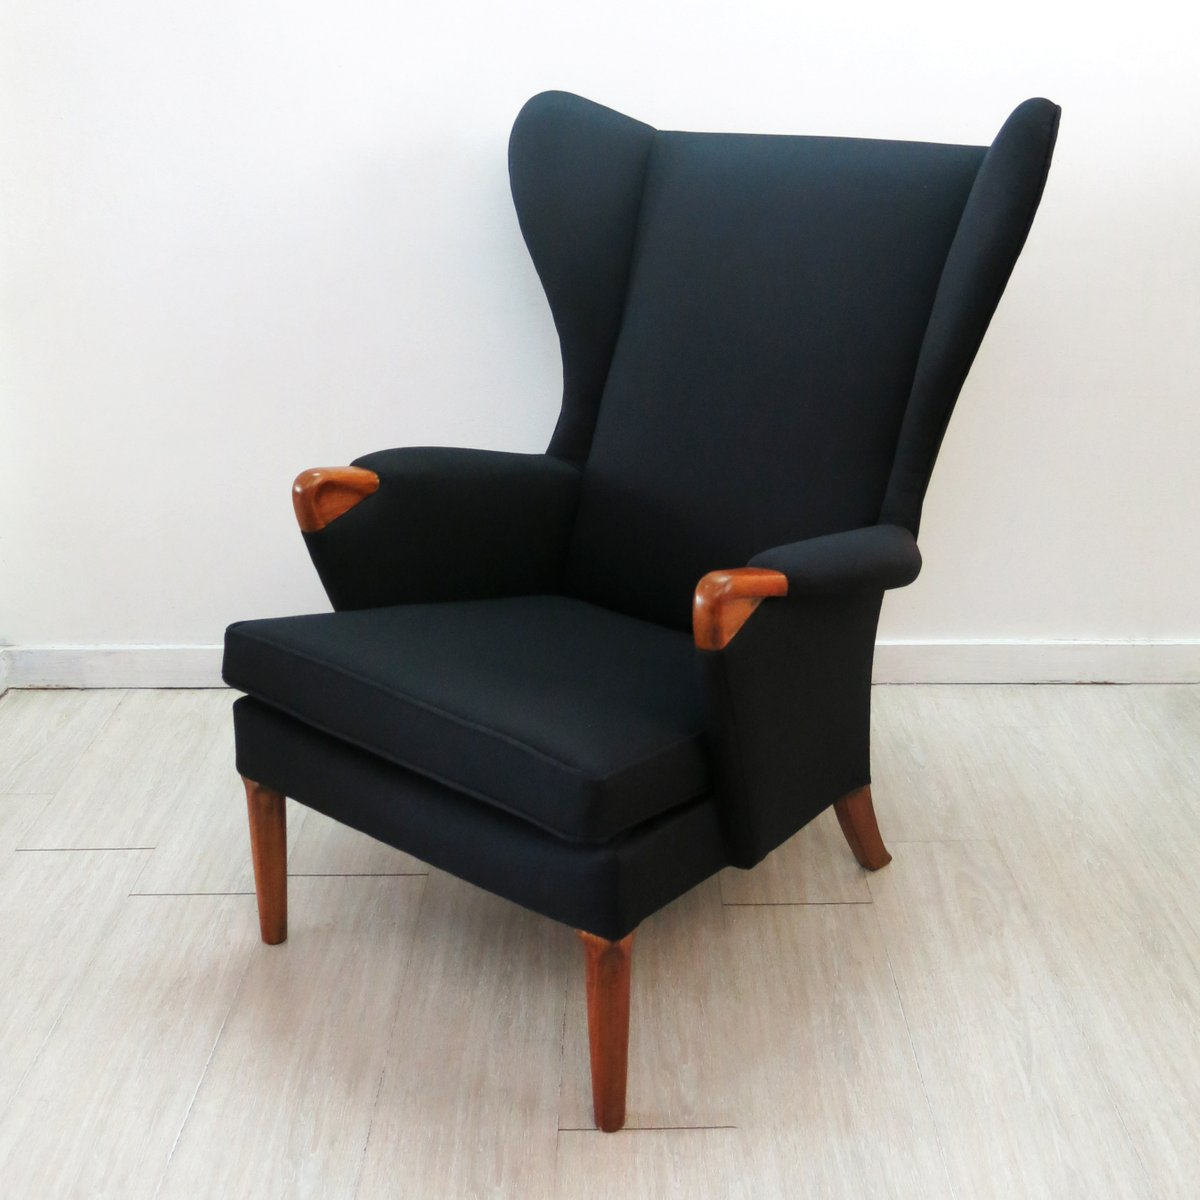 Black Wingback Chair With Teak Legs From Parker Knoll S For - Parker knoll egg chair